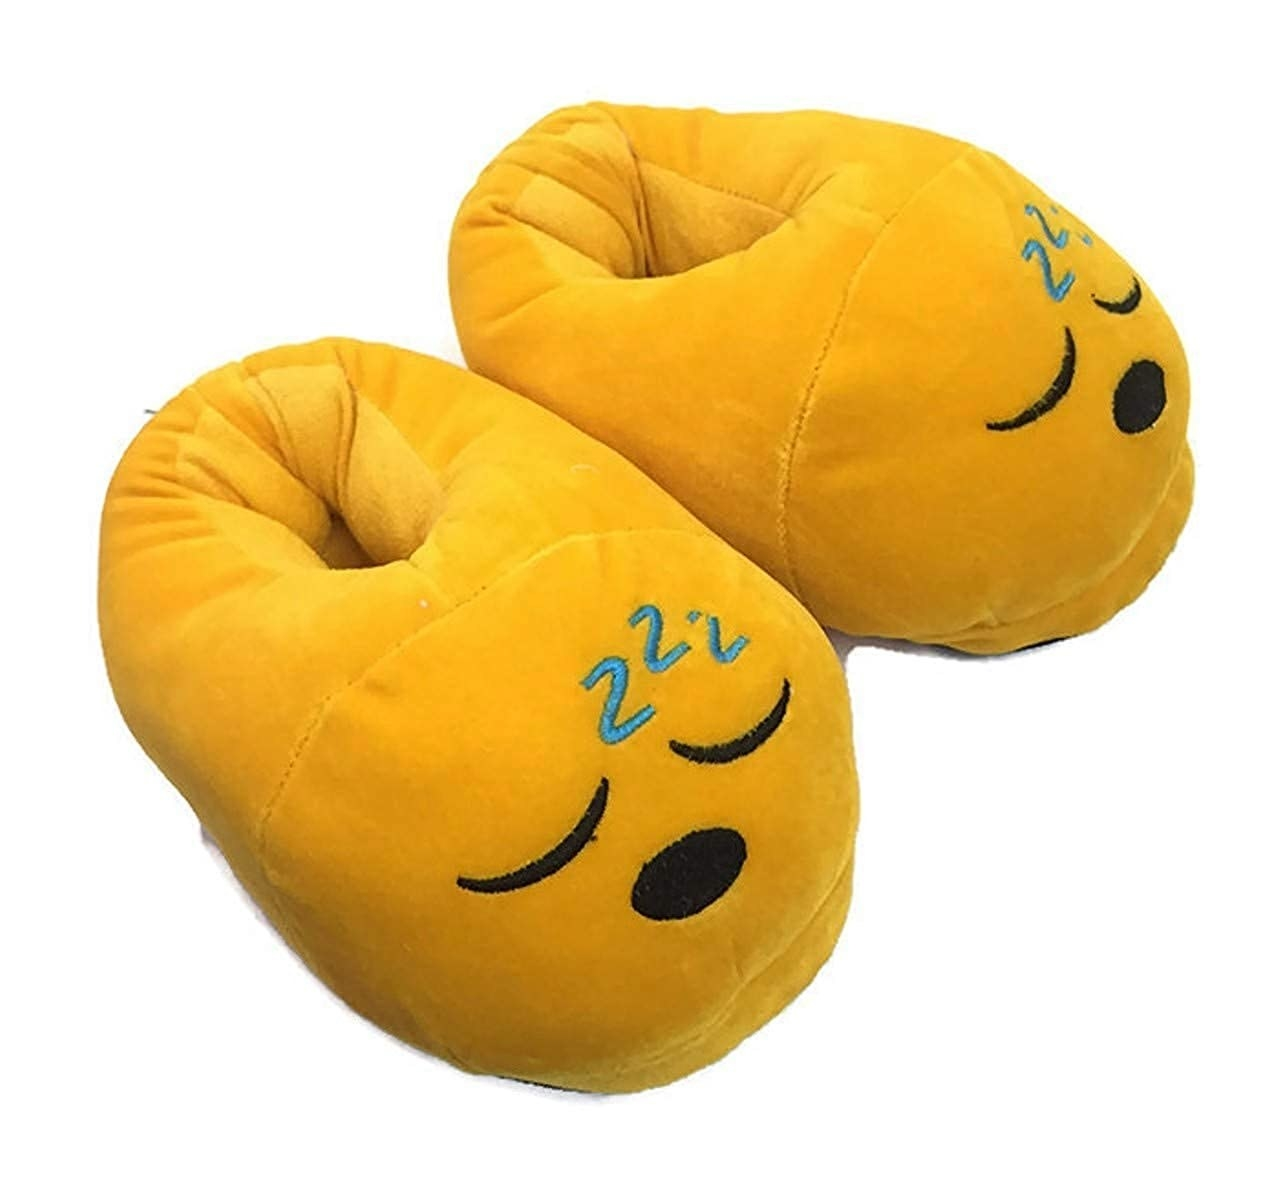 Pair of yellow plush slippers with a sleeping emoji on them